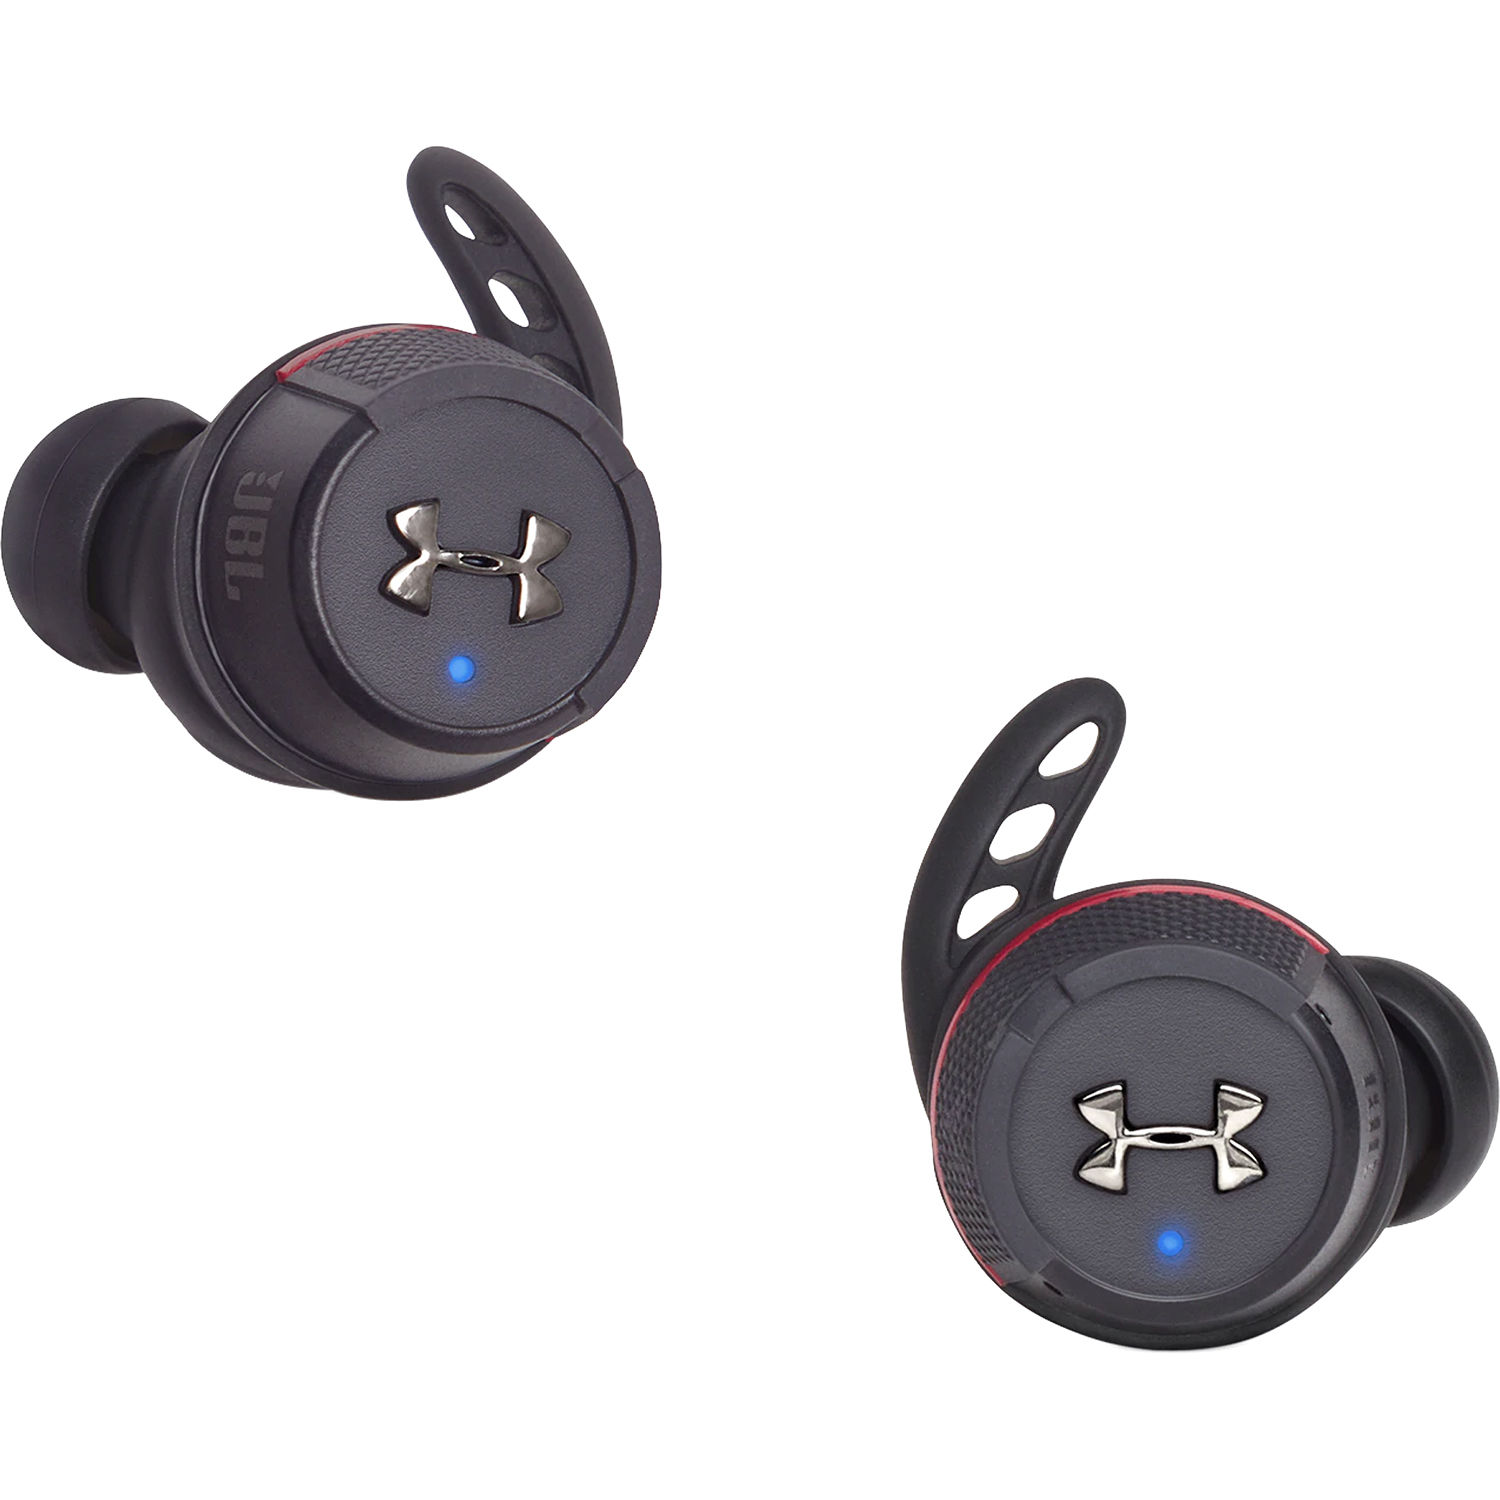 b6480e2c540 JBL Under Armour True Wireless Flash In-Ear UAJBLFLASHBLKAM B&H